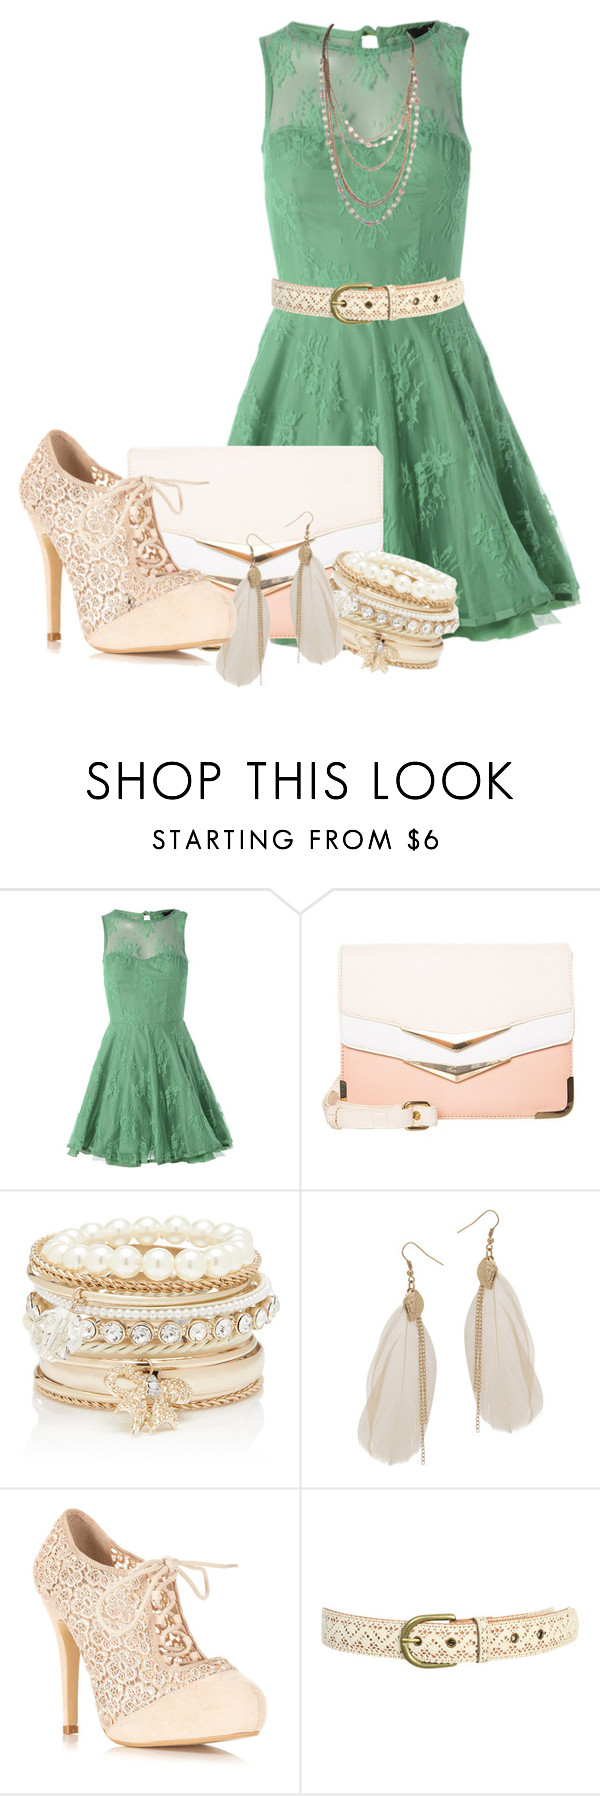 """Green Dress"" by kurlyglamour ❤ liked on Polyvore featuring AX Paris, ALDO, Forever New, Wet Seal and Miss Selfridge"